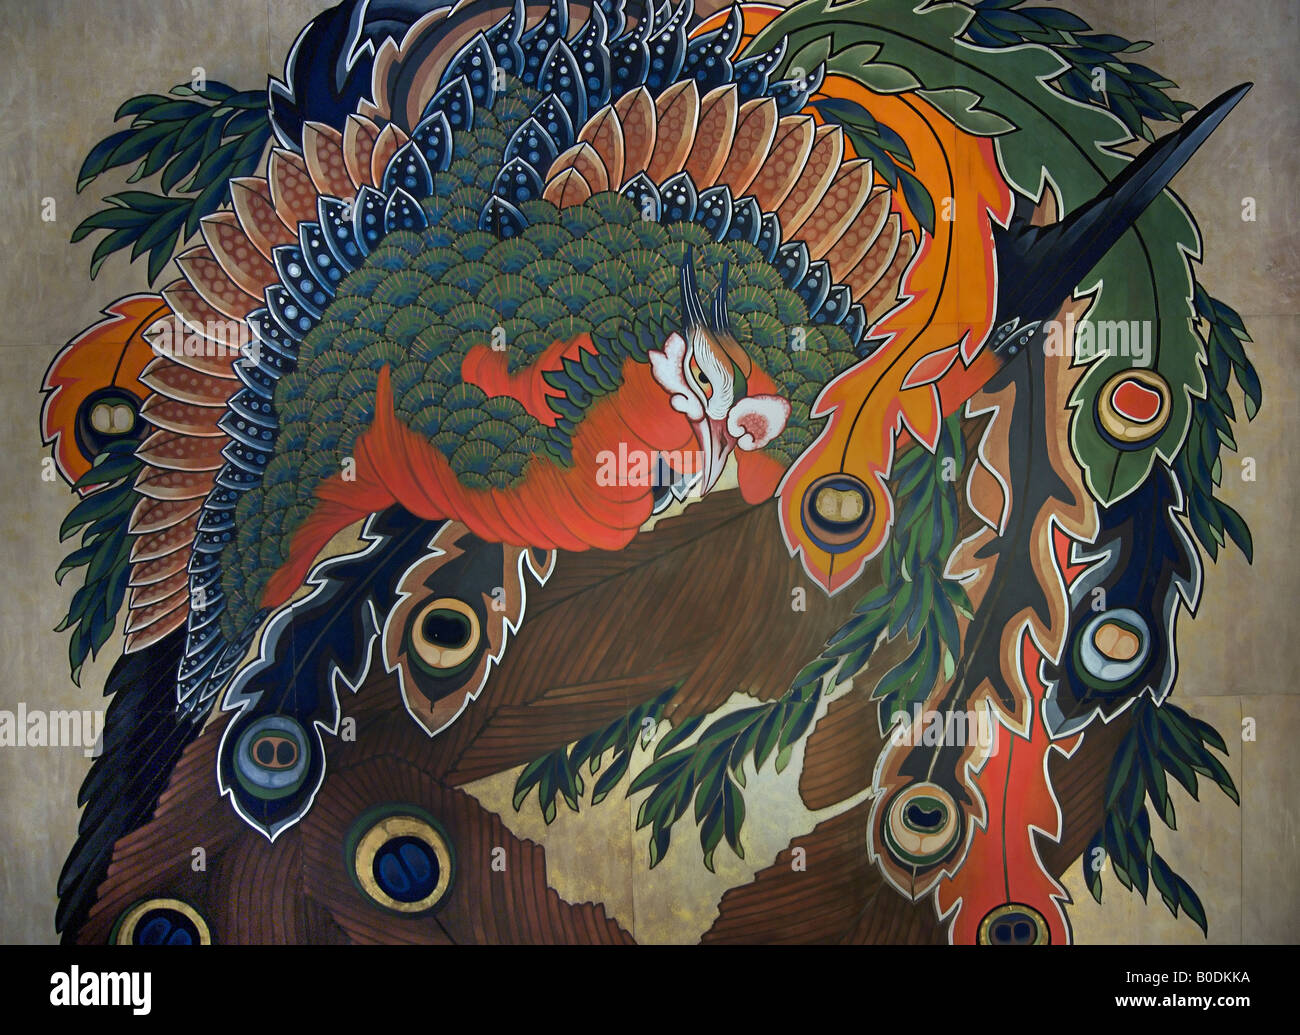 Phoenix Bird Painting High Resolution Stock Photography And Images Alamy